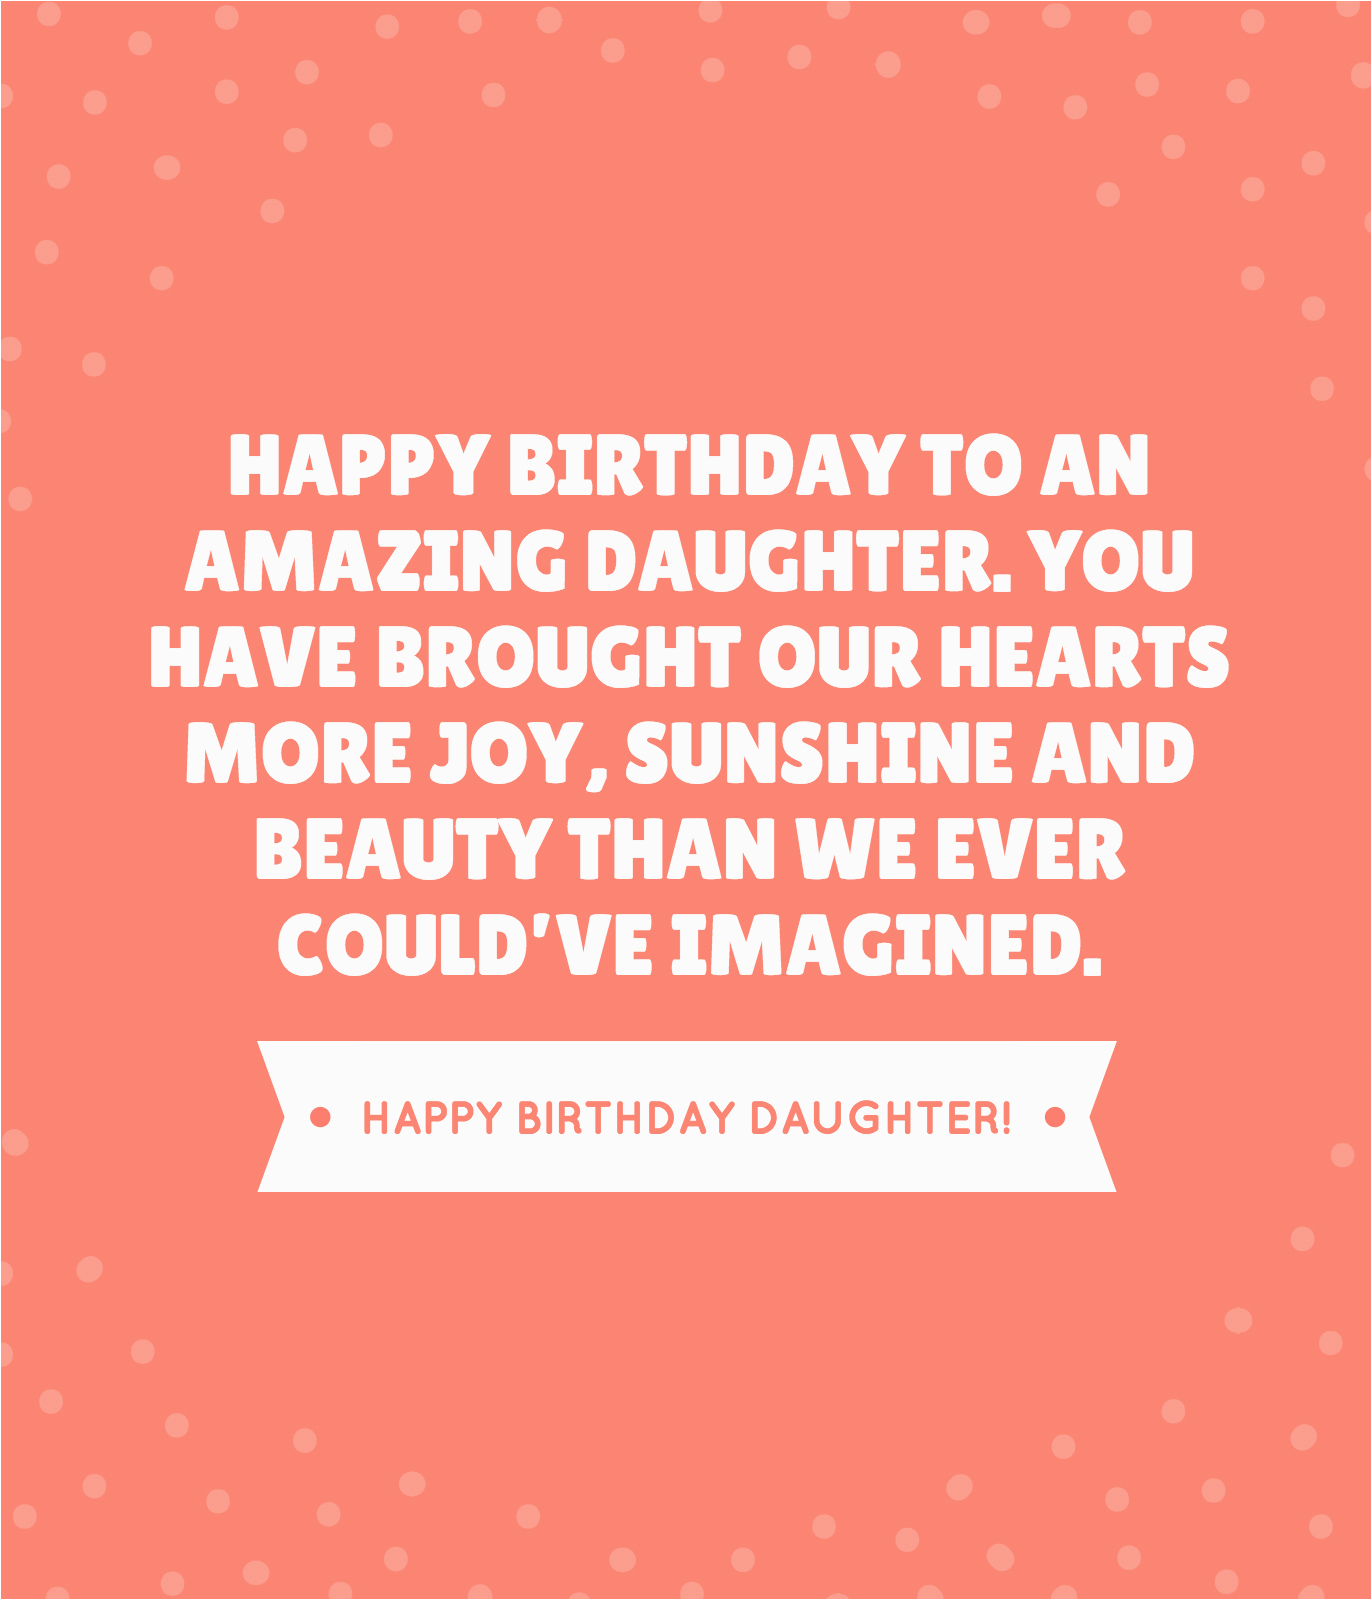 Happy Birthday Special Daughter Quotes 35 Beautiful Ways to Say Happy Birthday Daughter Unique